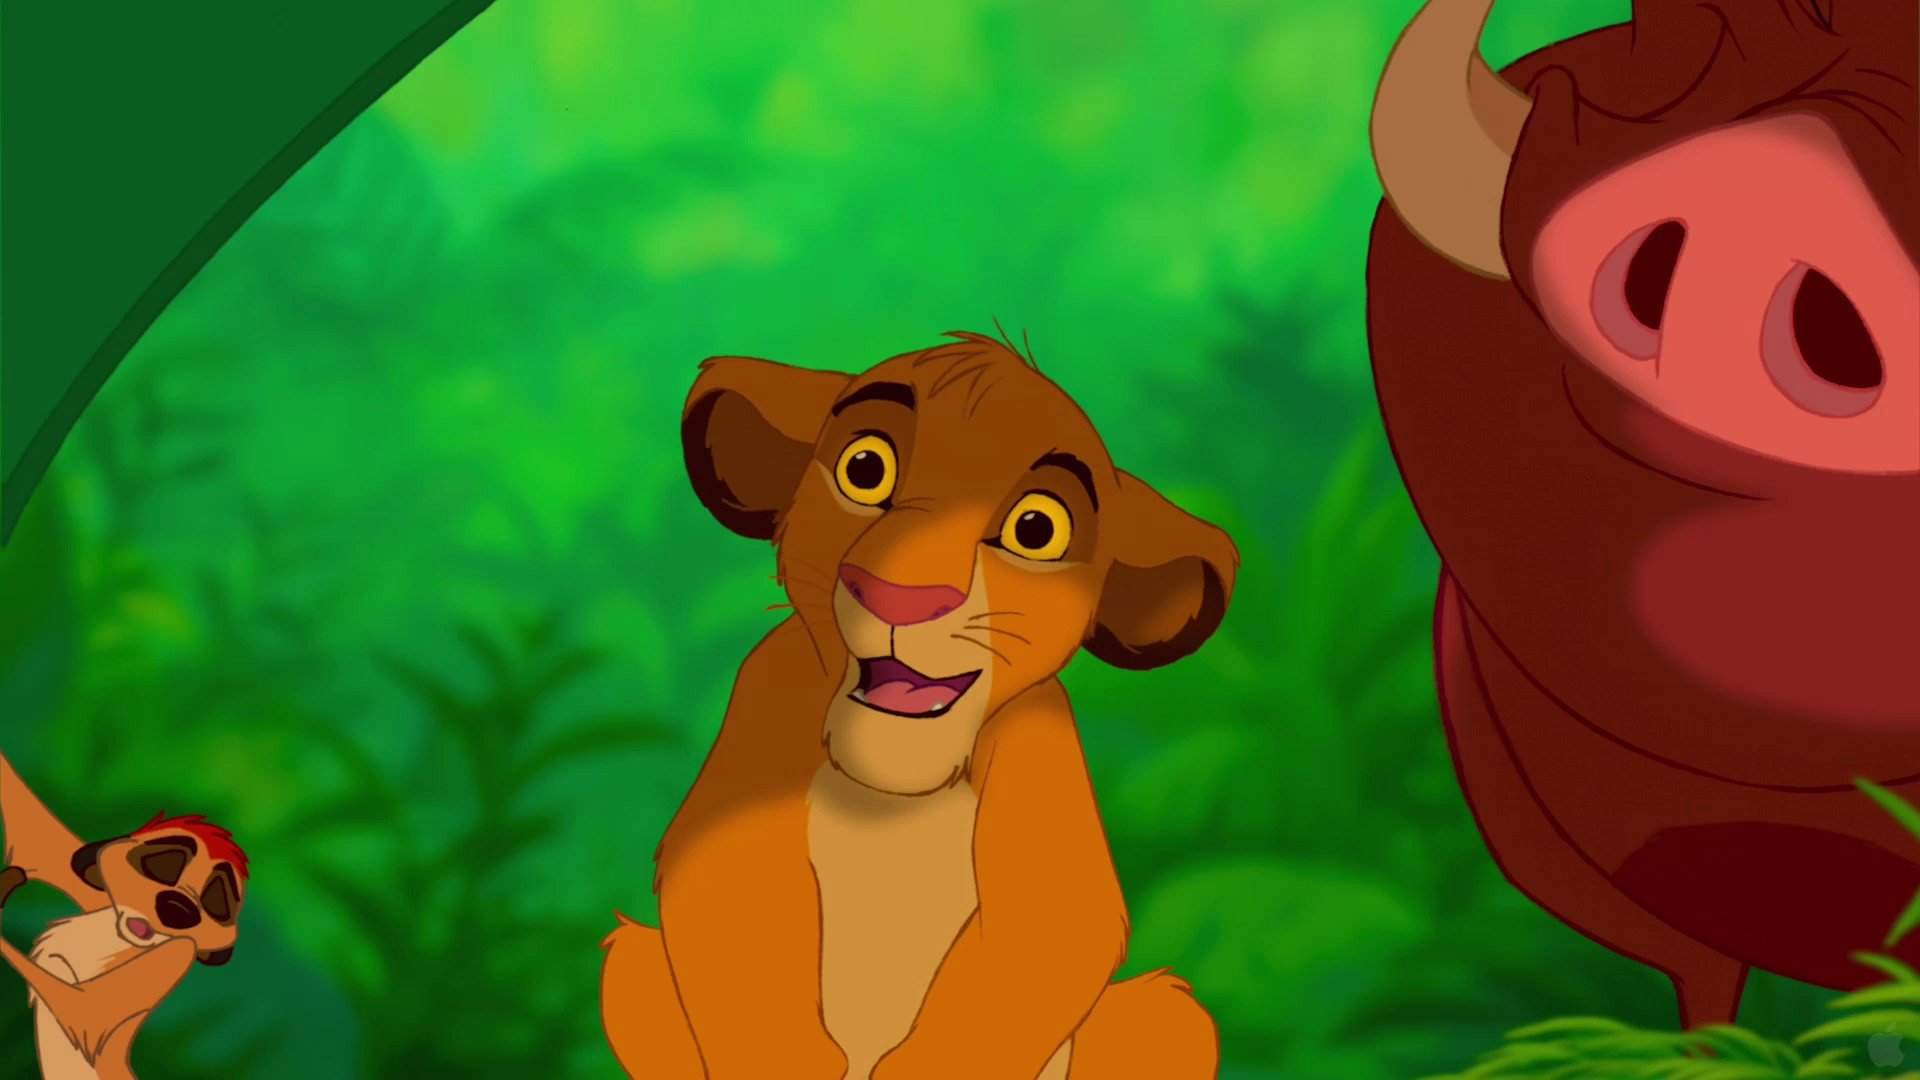 Download Hd 1080p The Lion King Pc Wallpaper Id 271239 For Free